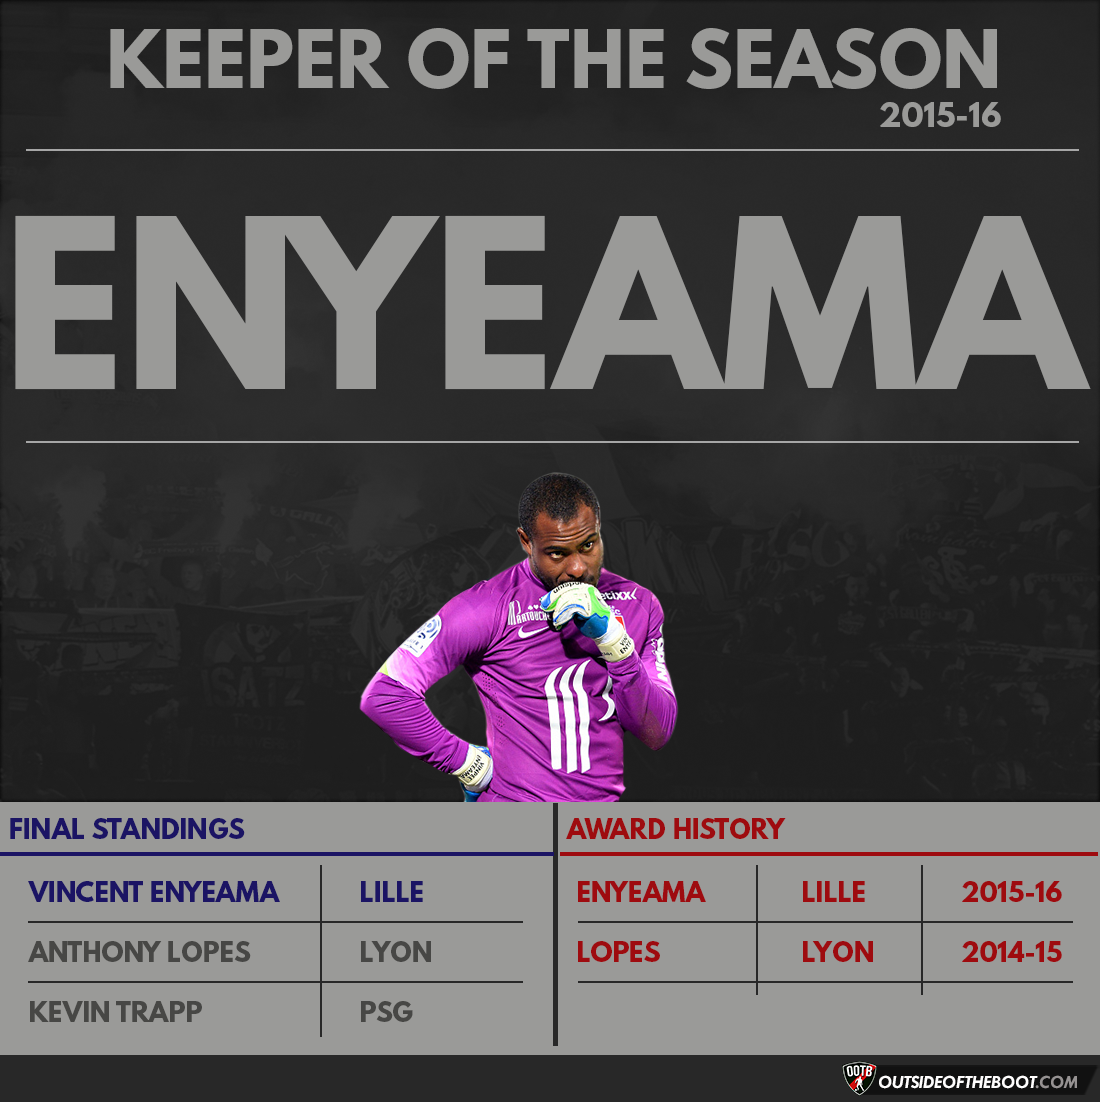 Ligue 1 Keeper of the Season 2015-16